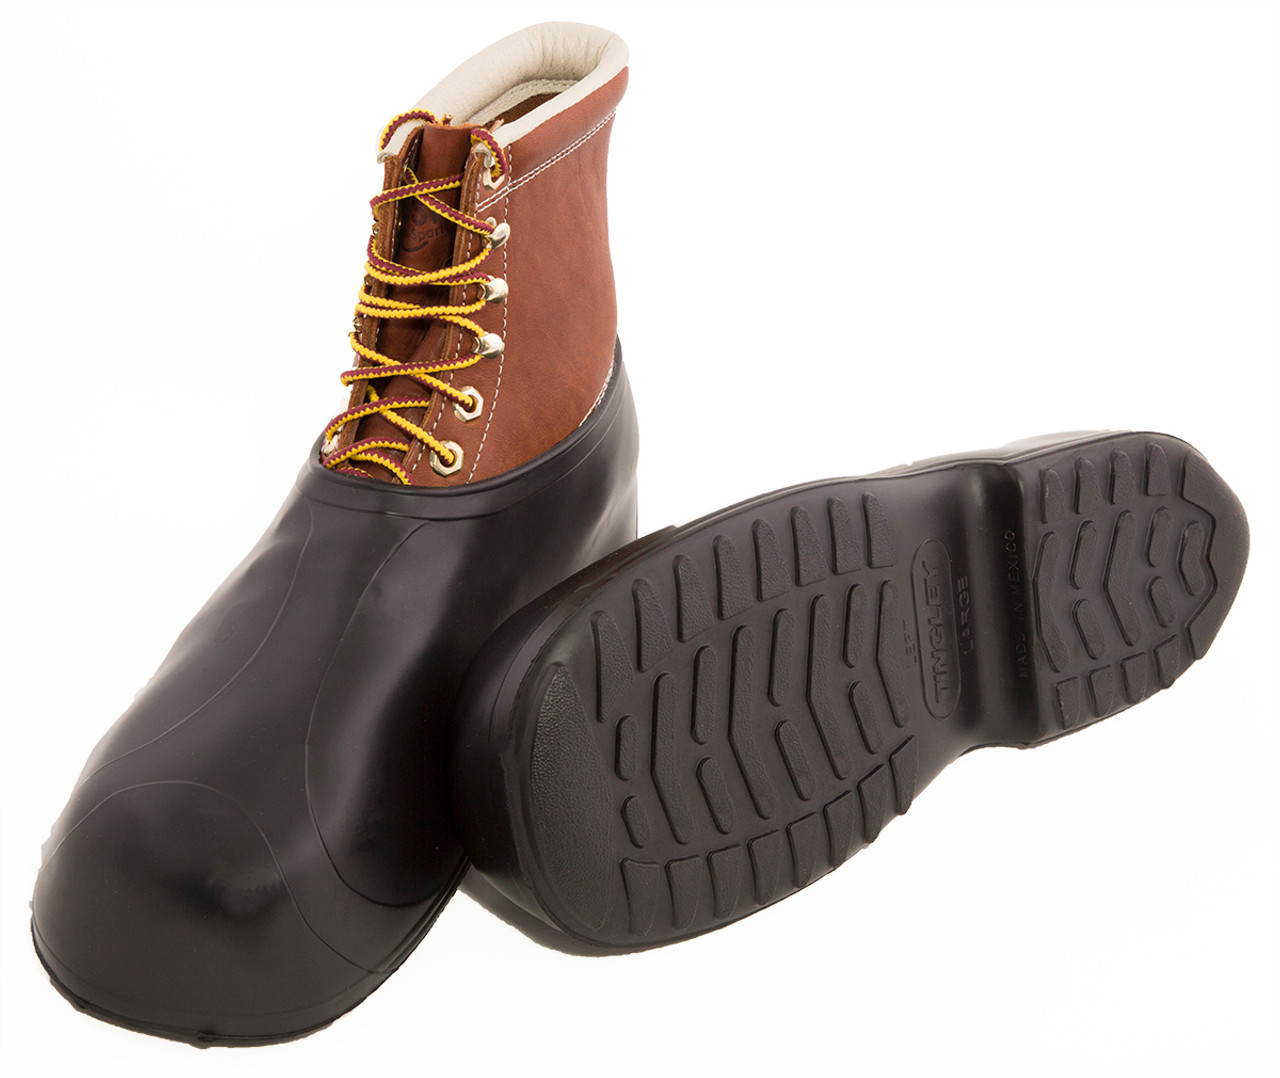 new product 746ff 5a130 Work Rubber Overshoe |Durable |Tingley